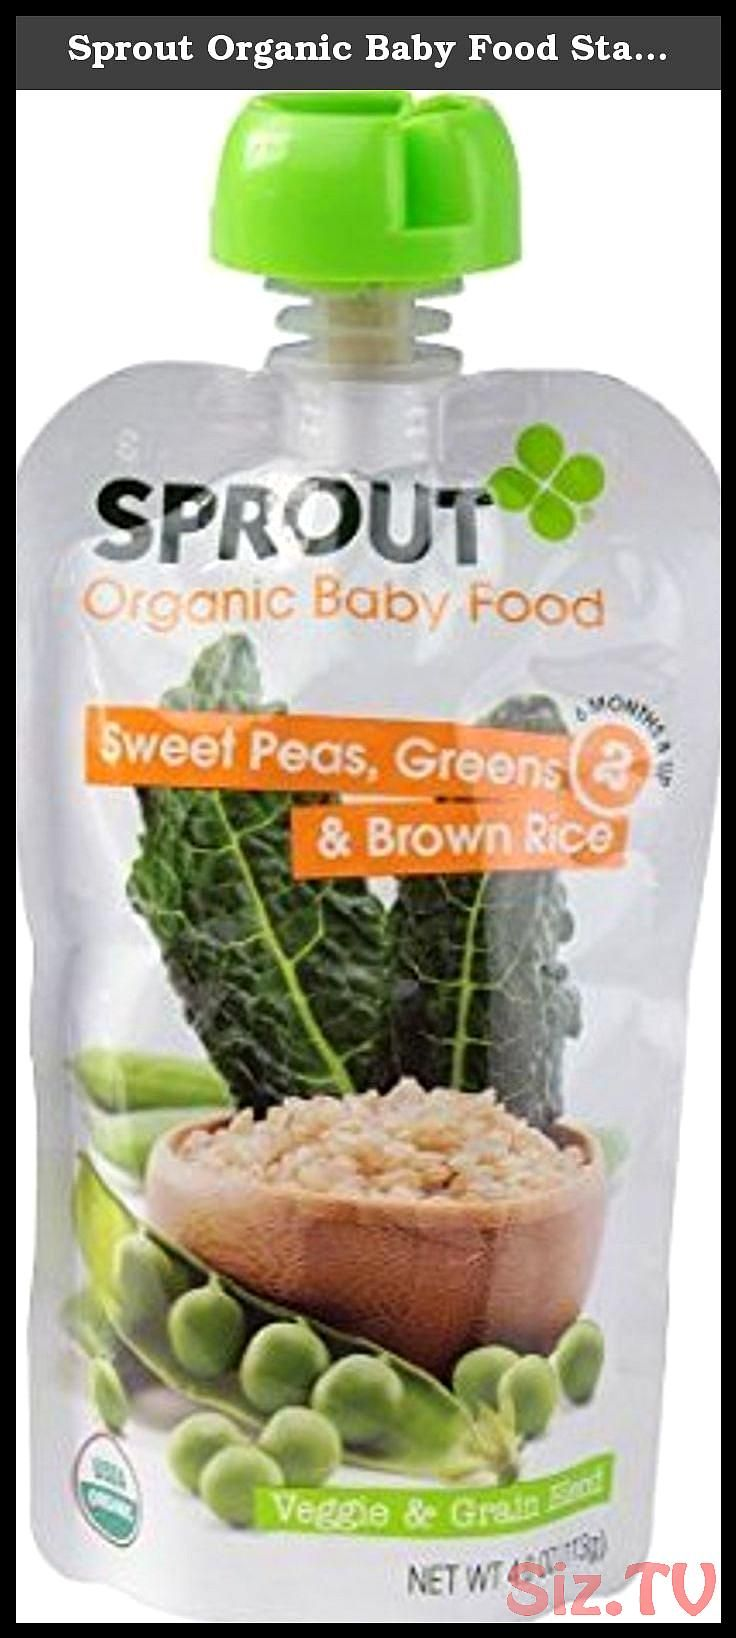 Sprout Organic Baby Food Stage 2 Veggie 038 Grain Blend Sweet Peas Greens and Brown Rice 4 oz Sprout Organic Baby Food Stage 2 Veggie 038 Grain Blend Sprout Organic Baby...